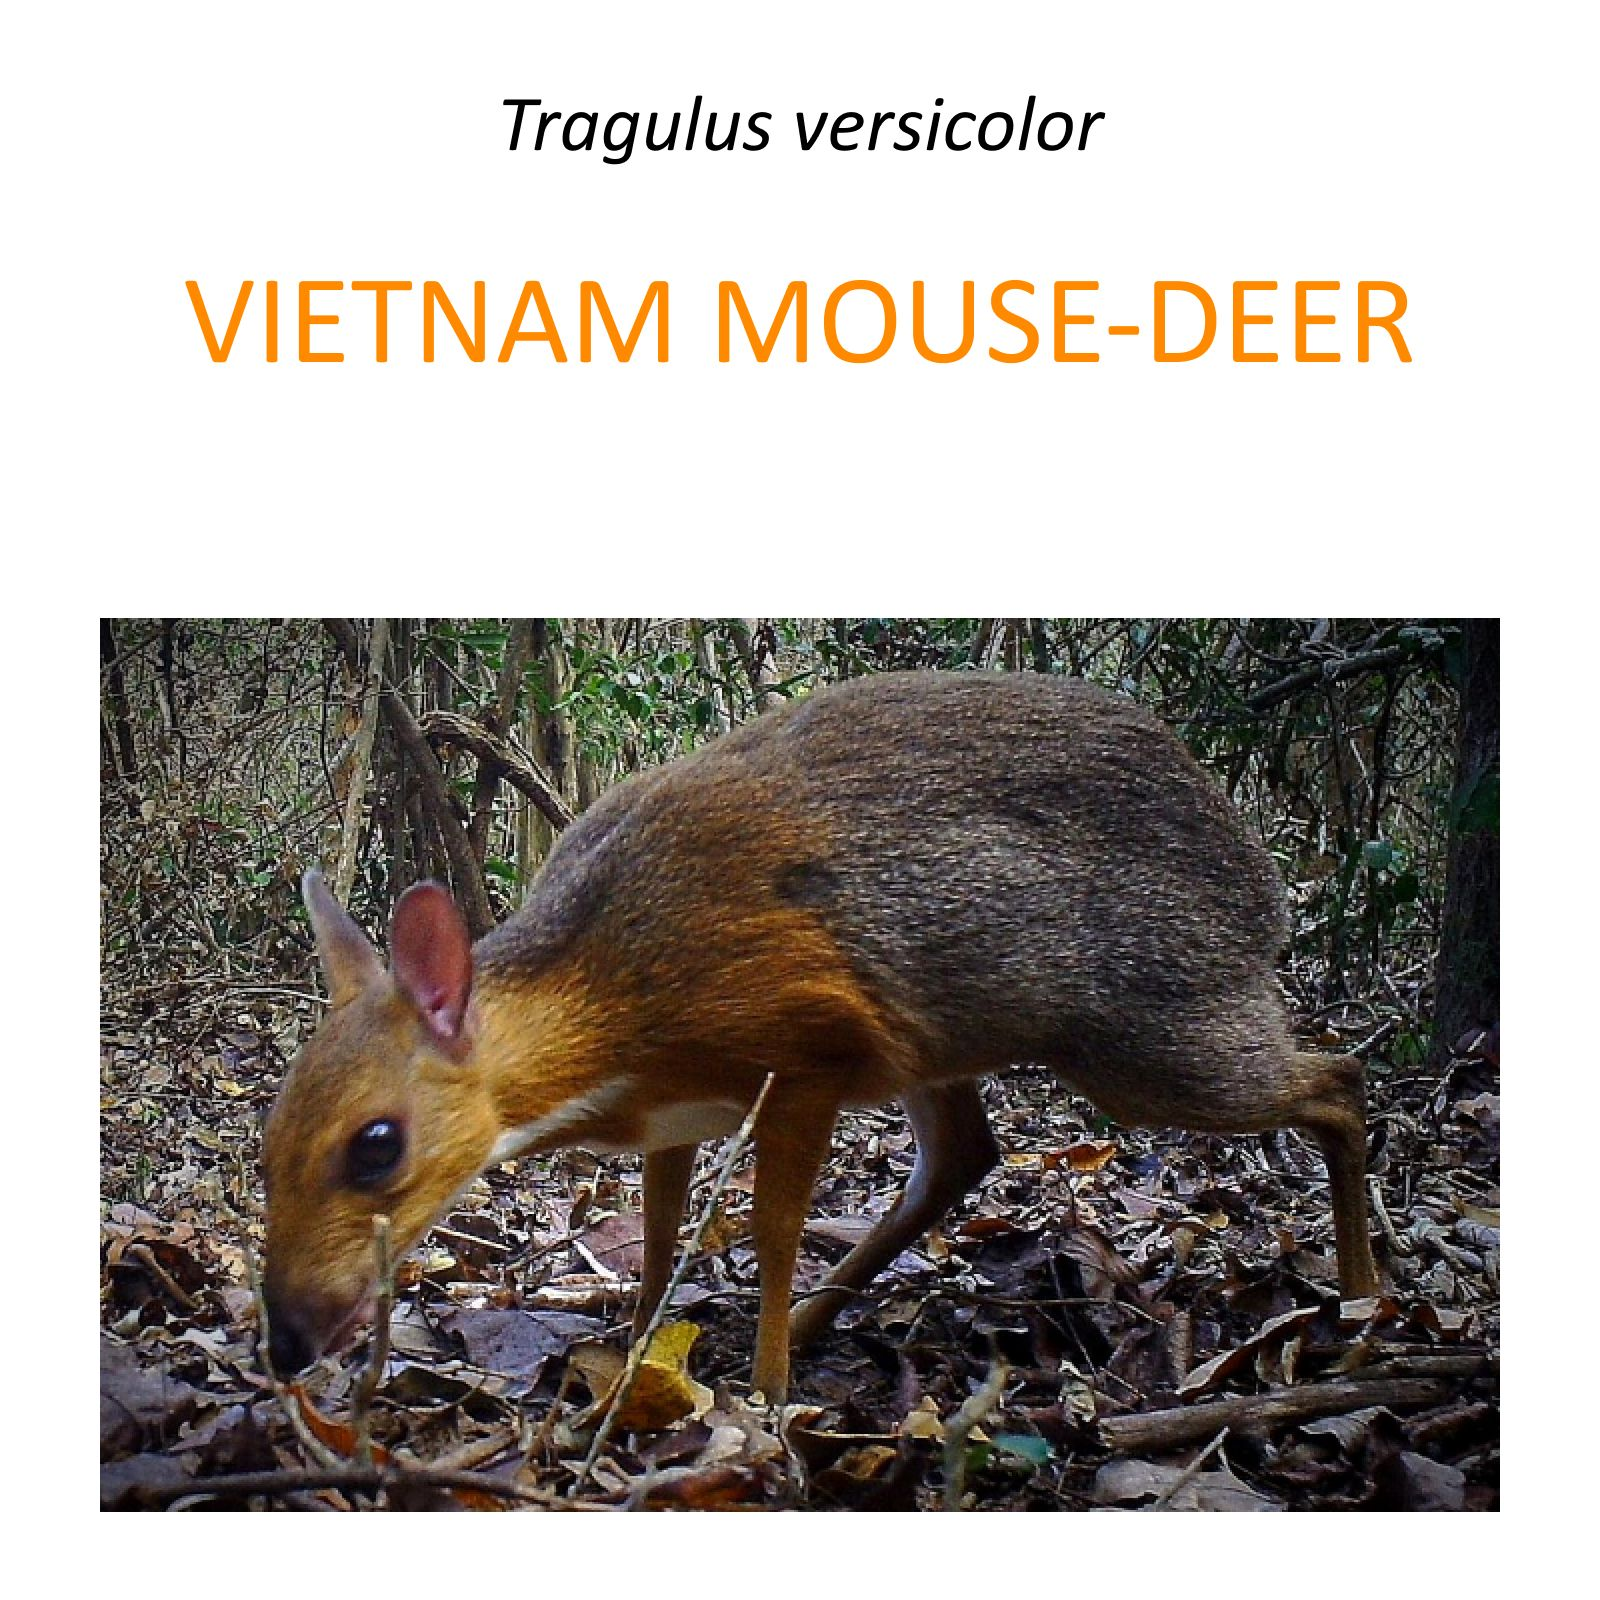 Silver-backed chevrotain protection project in Vietnam